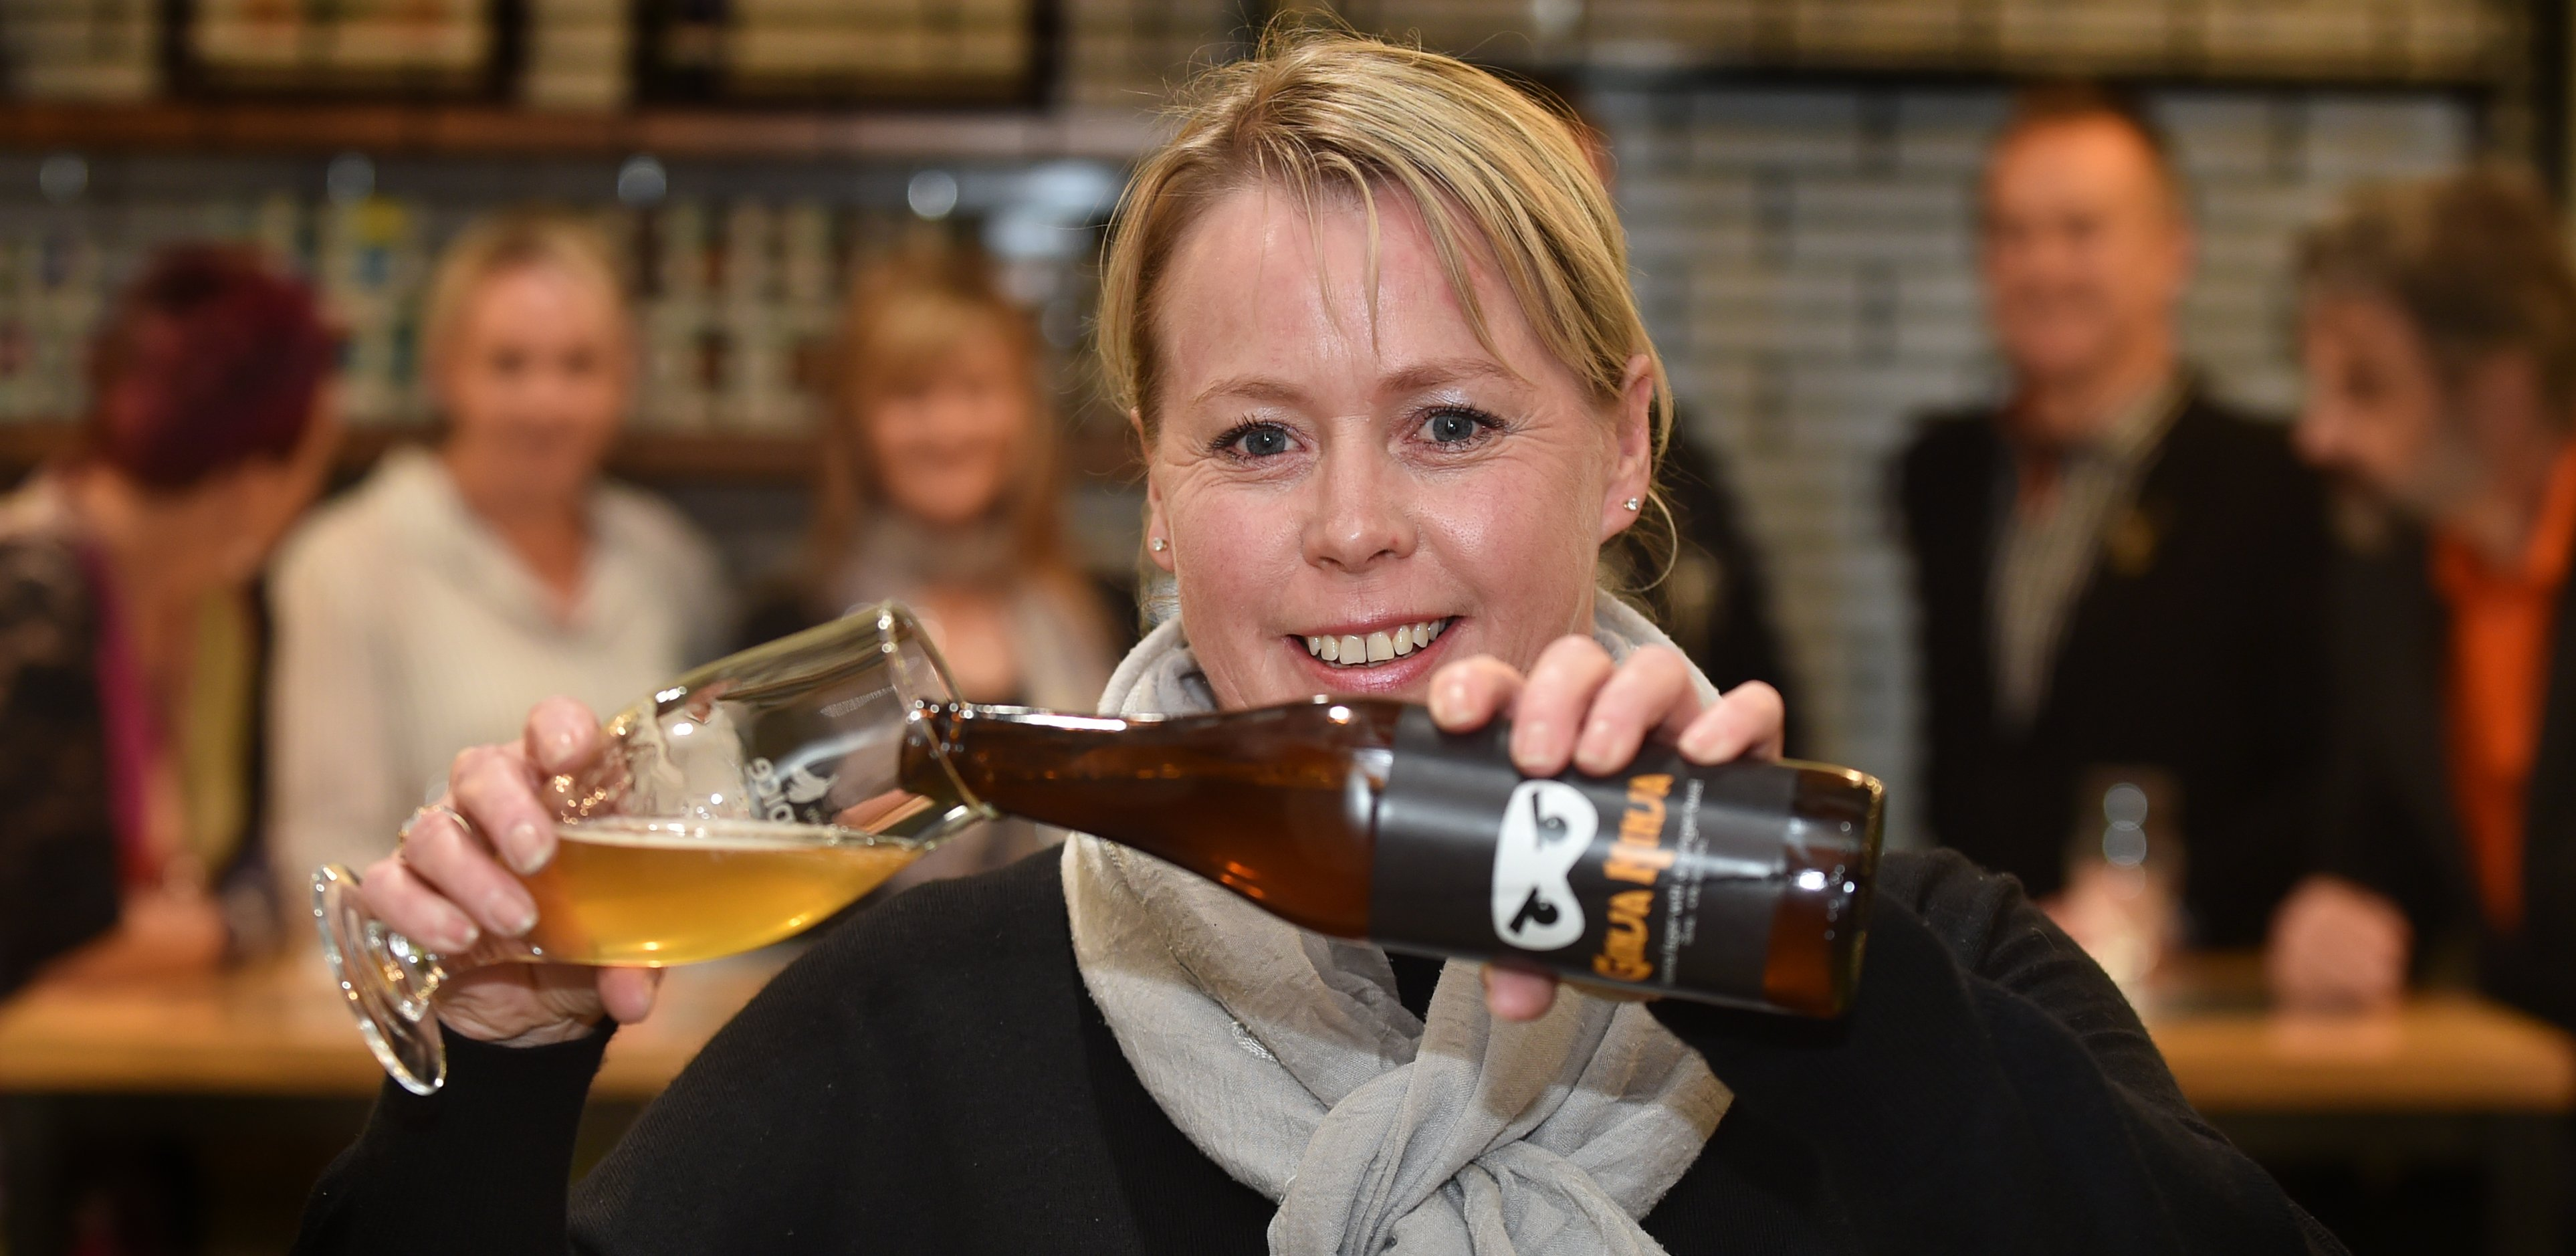 Otago Community Hospice chief executive Ginny Green pours a specially brewed ginger-infused Vienna lager at a hospice fundraising event at Otago Polytechnic on Saturday. Photo: Peter McIntosh.